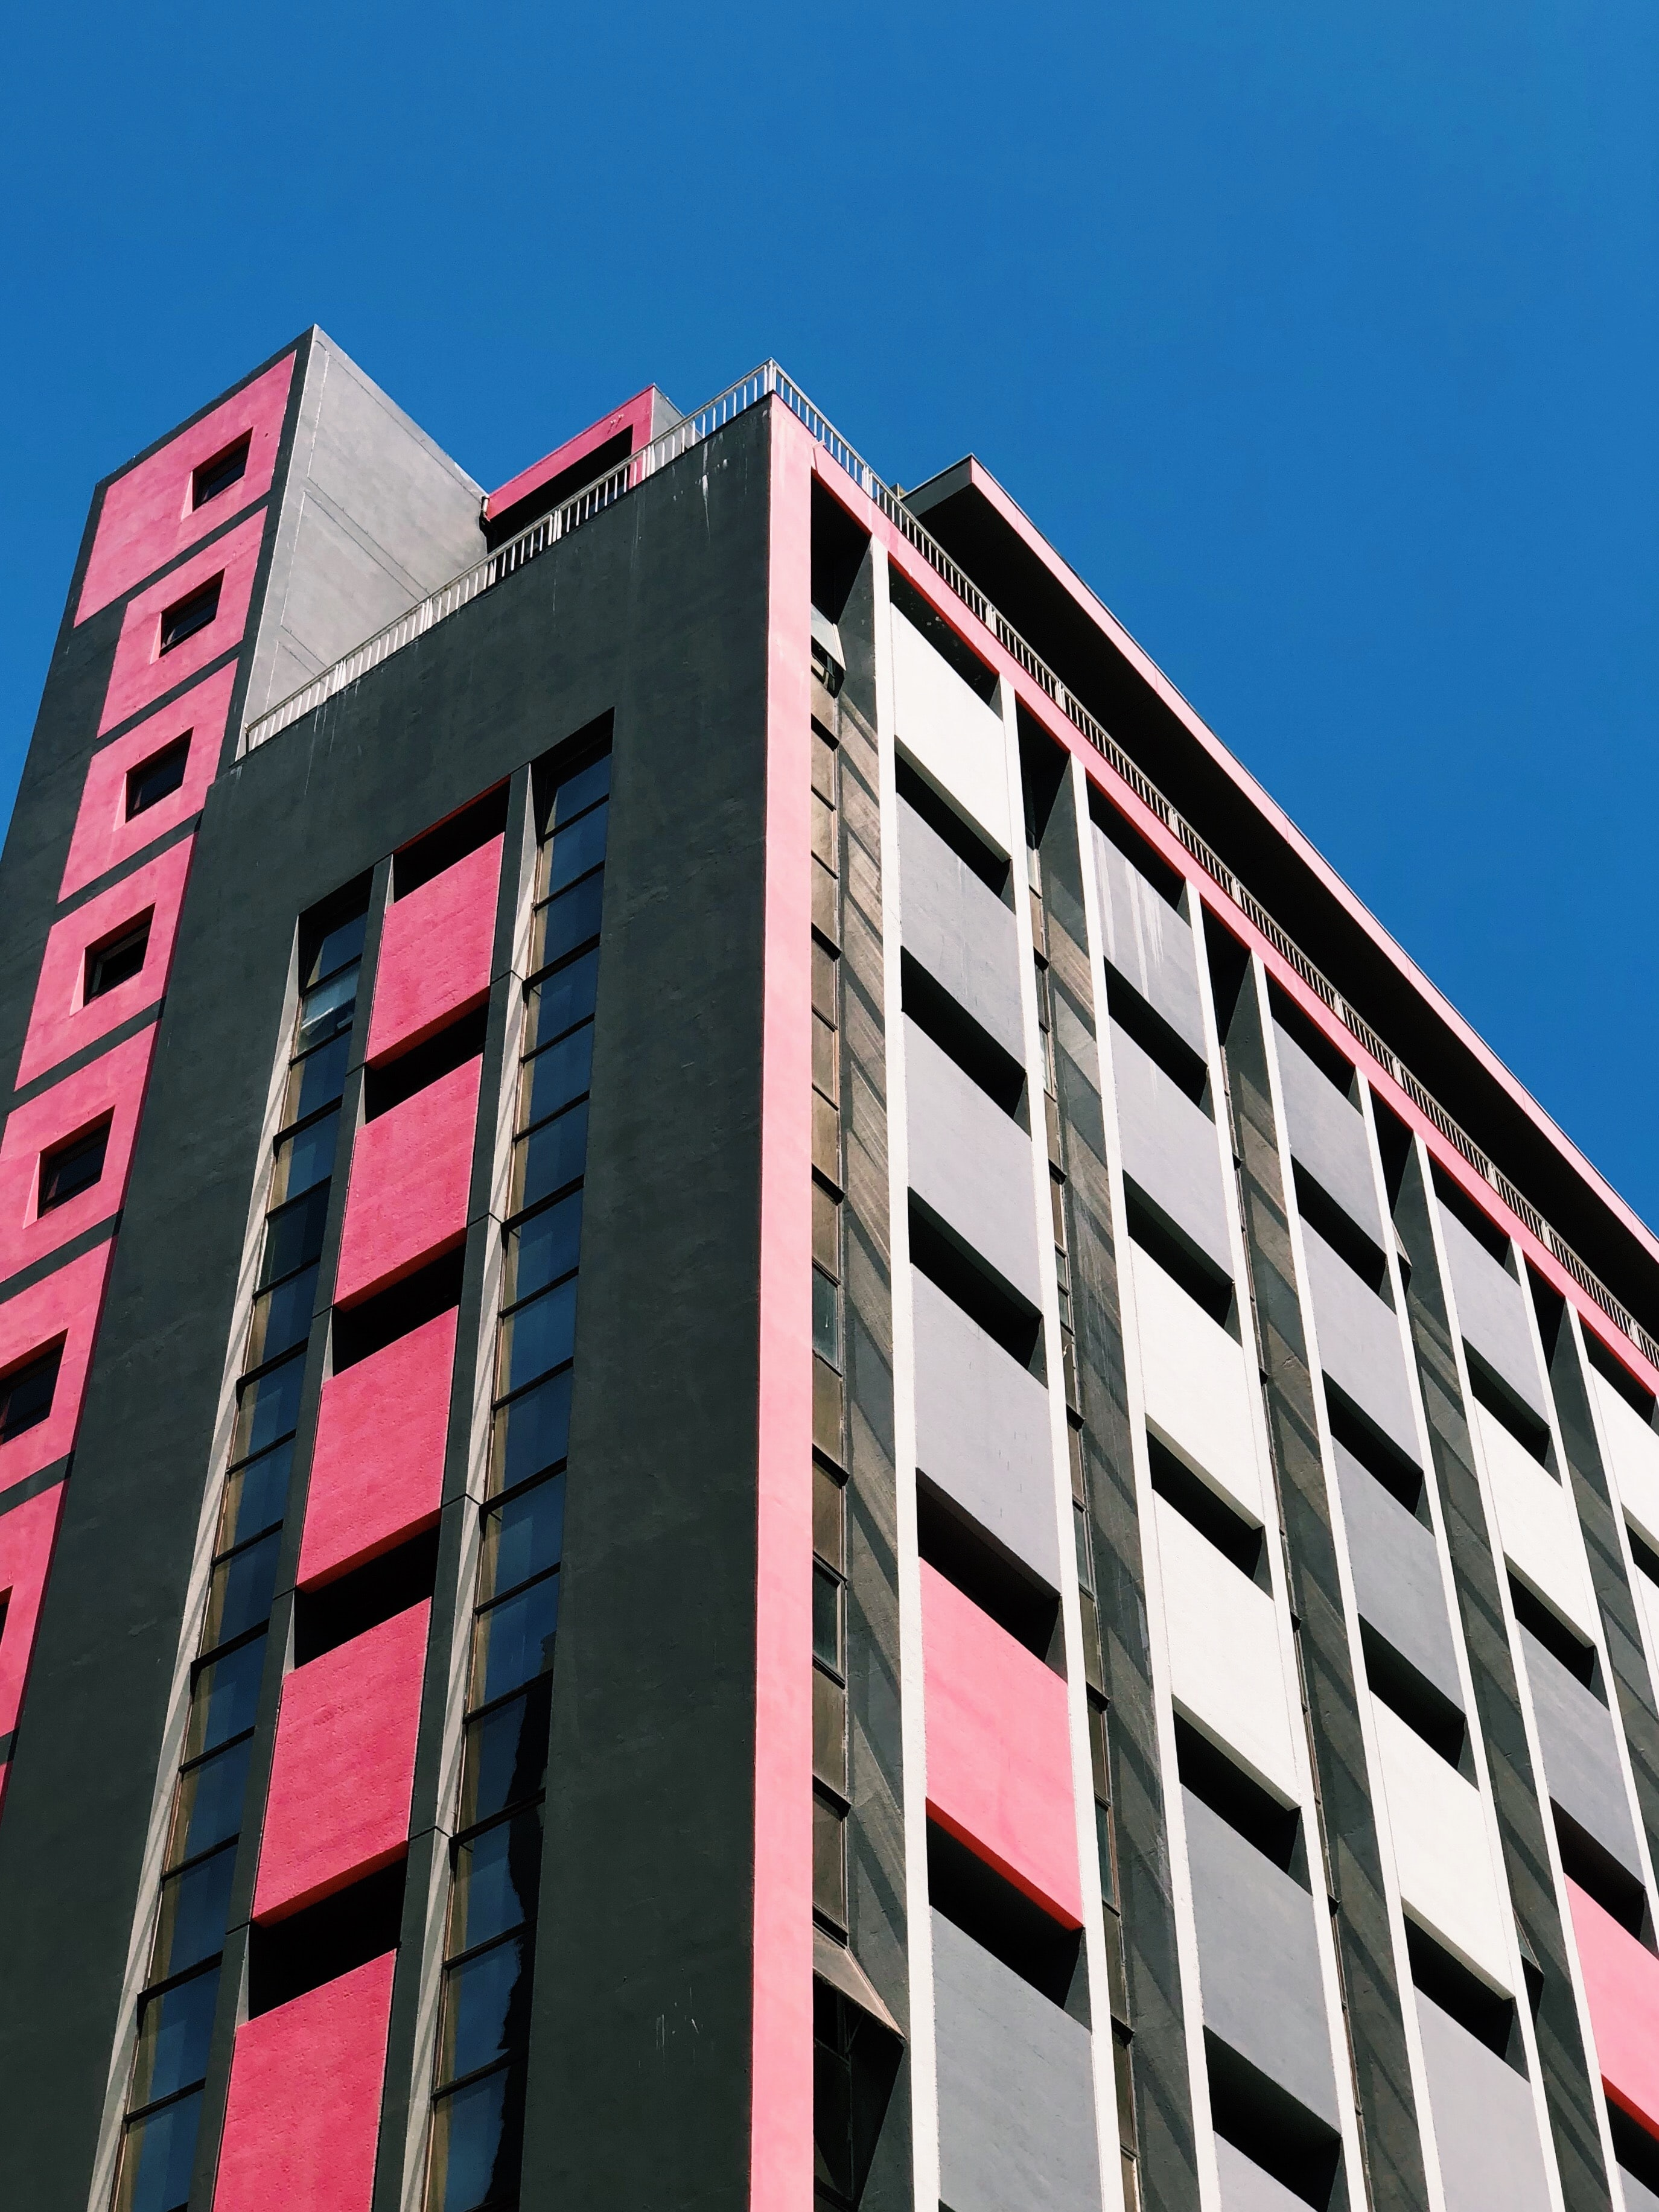 black and pink concrete building